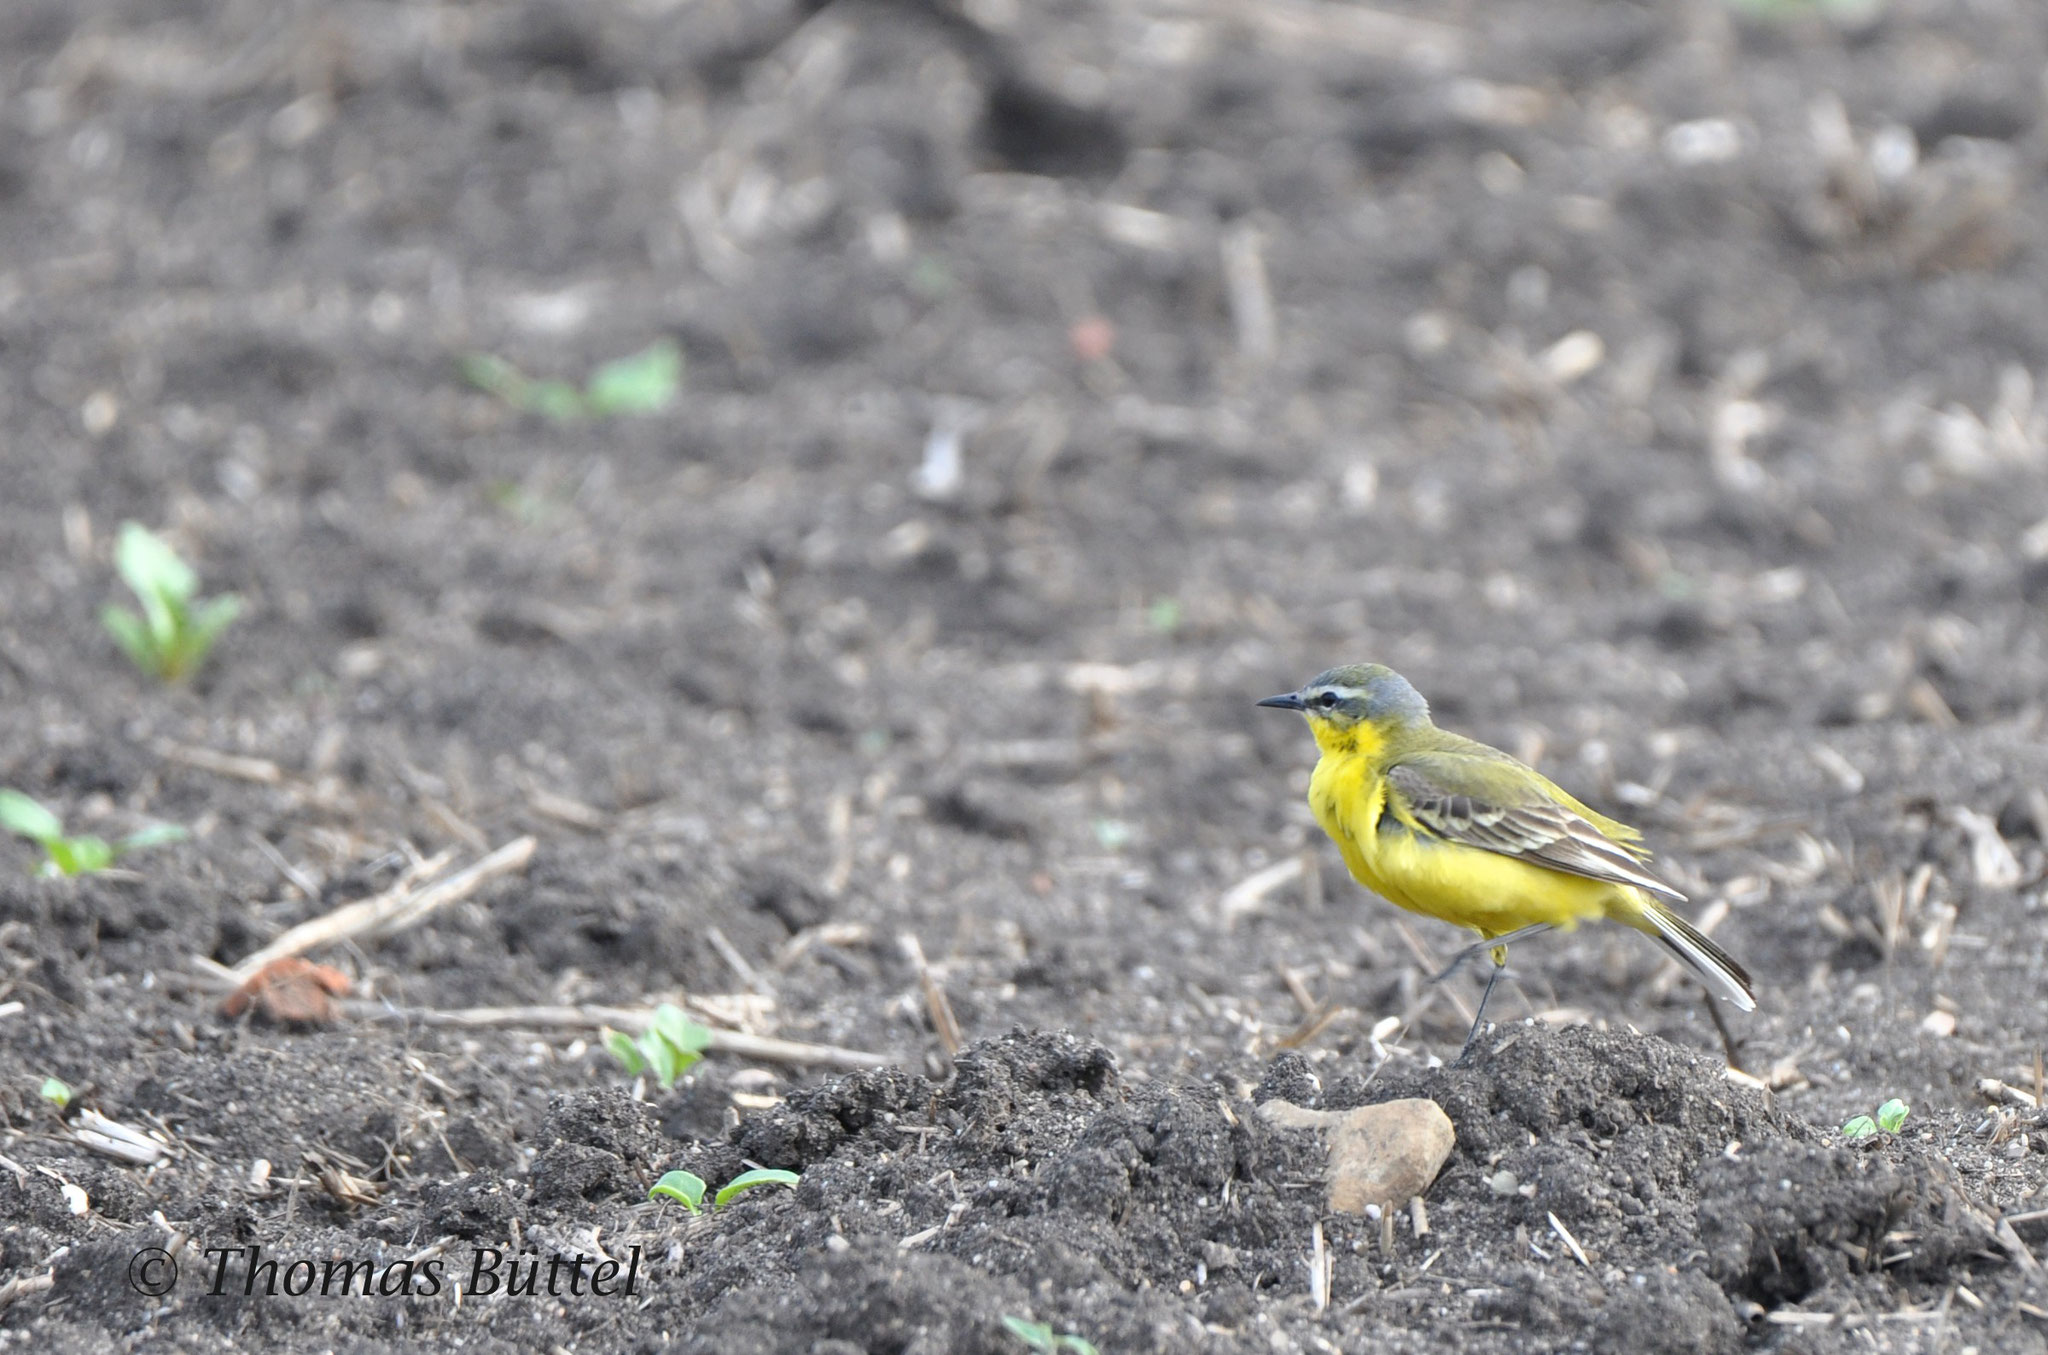 classic male Blue-headed Wagtail